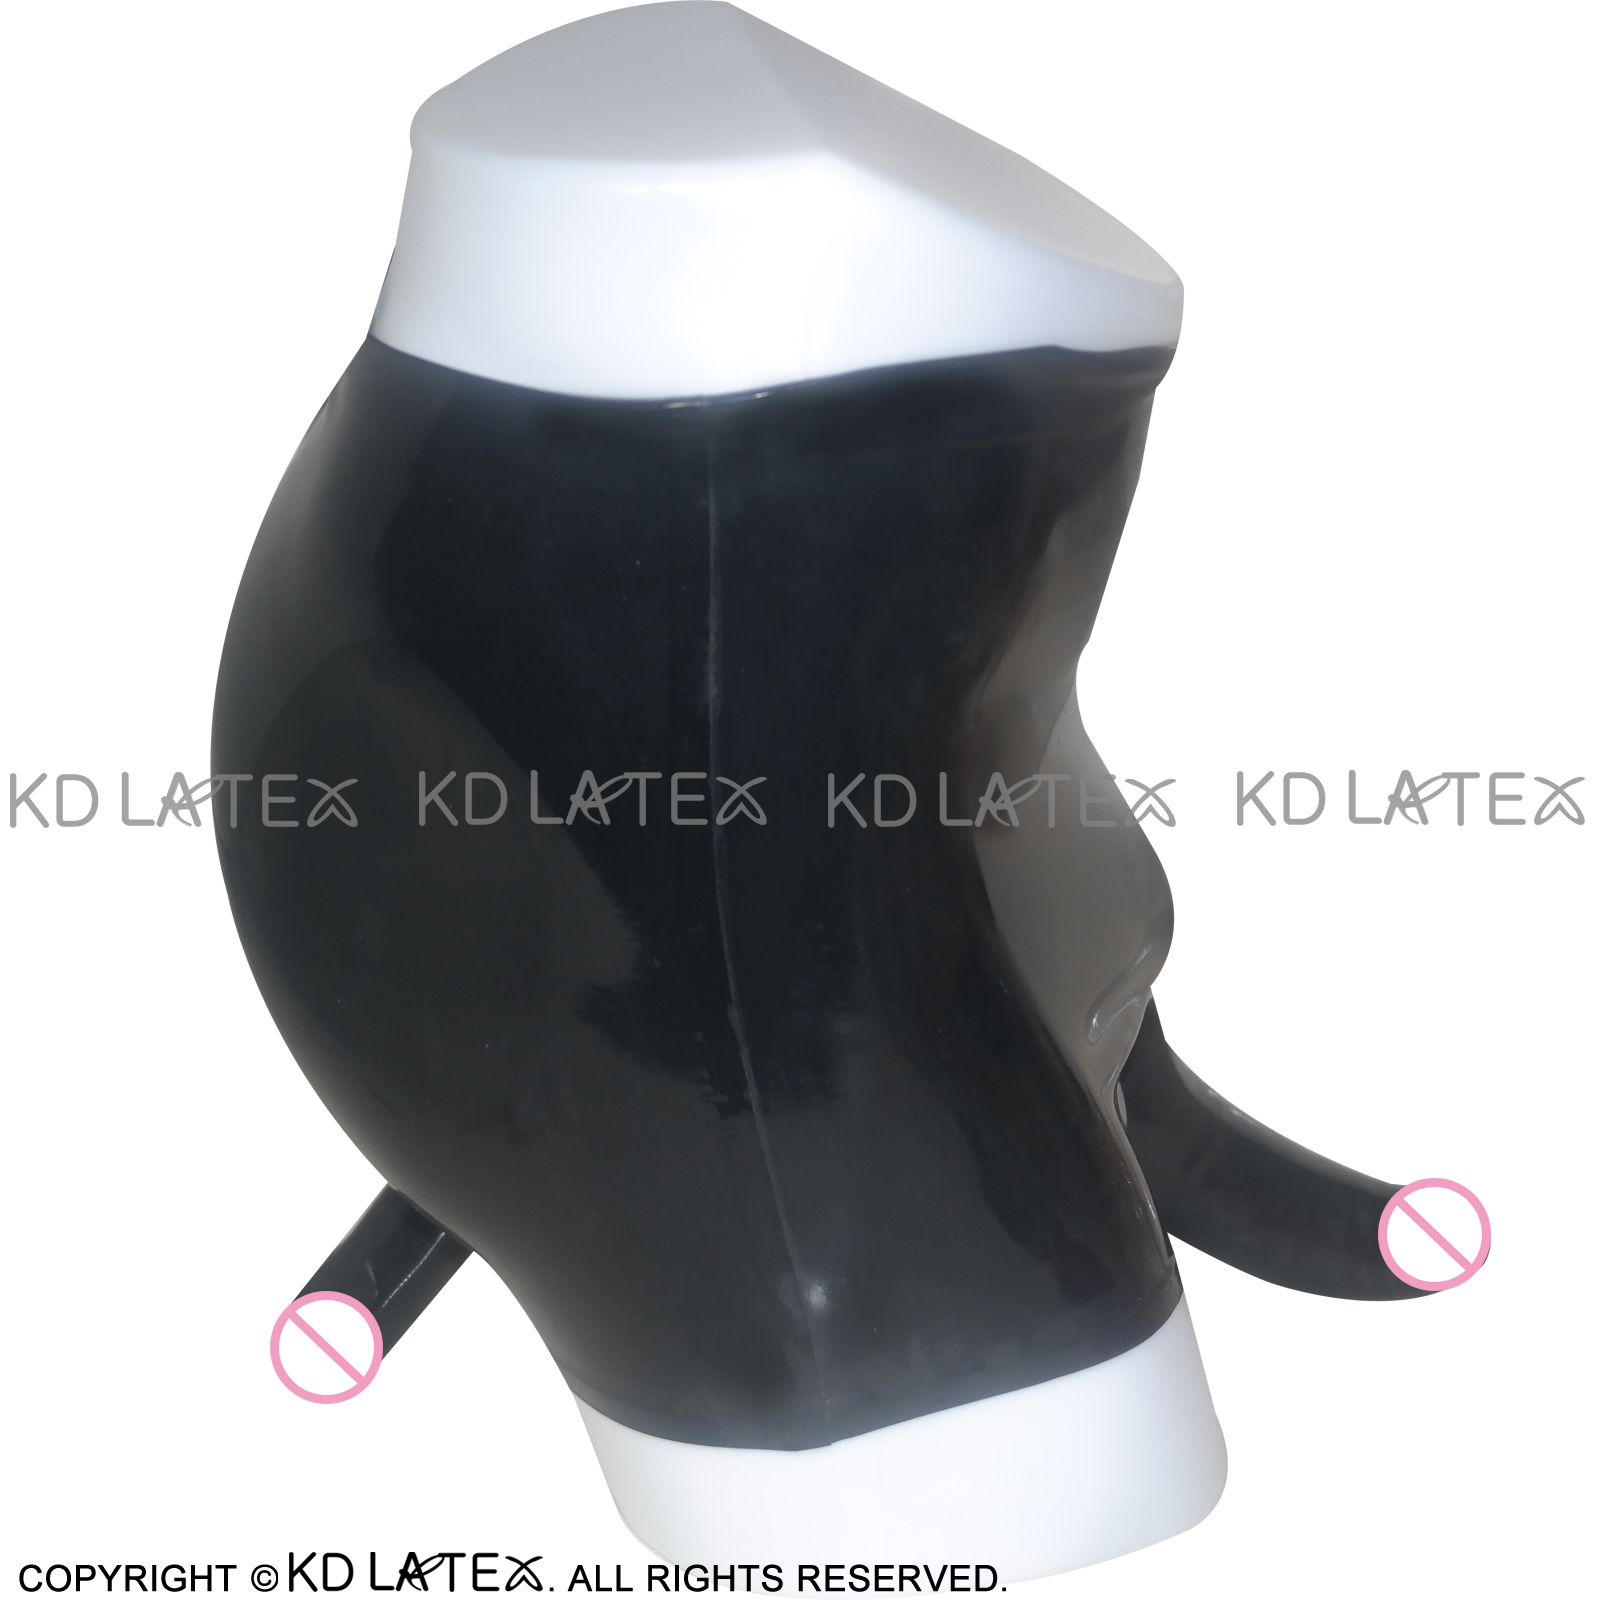 Black Mid Waist Latex Briefs With Anatomical Penis Sheath And Anal Condom Rubber Underwear Shorts Bottoms  DK-0019